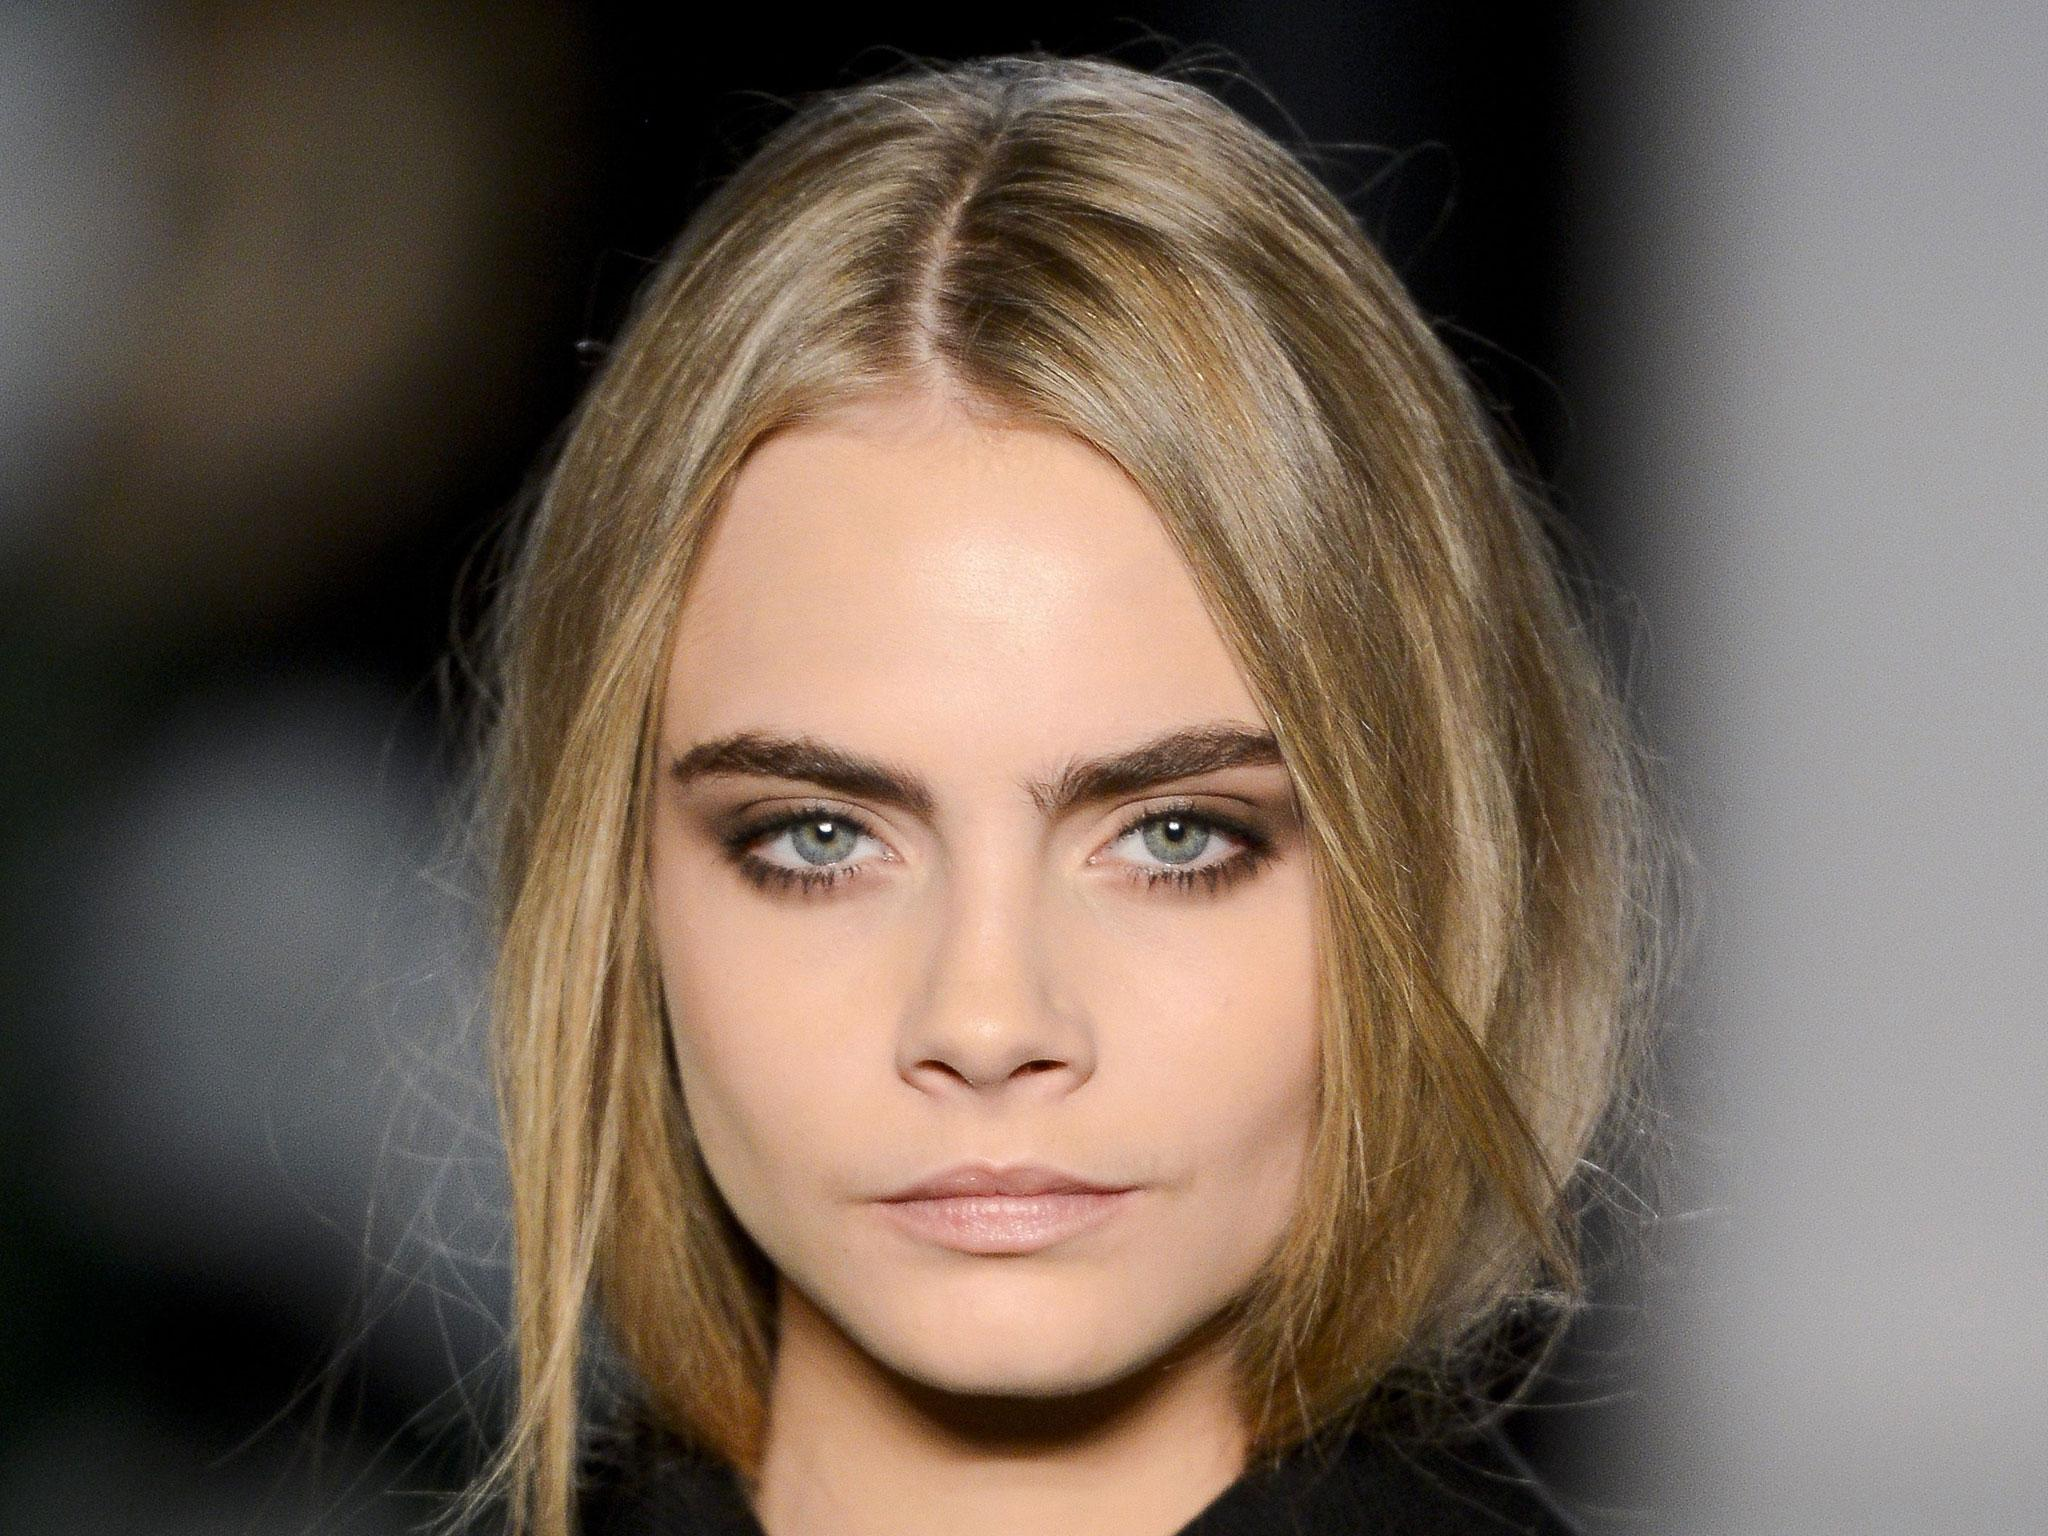 How To Grow Your Eyebrows The Independent